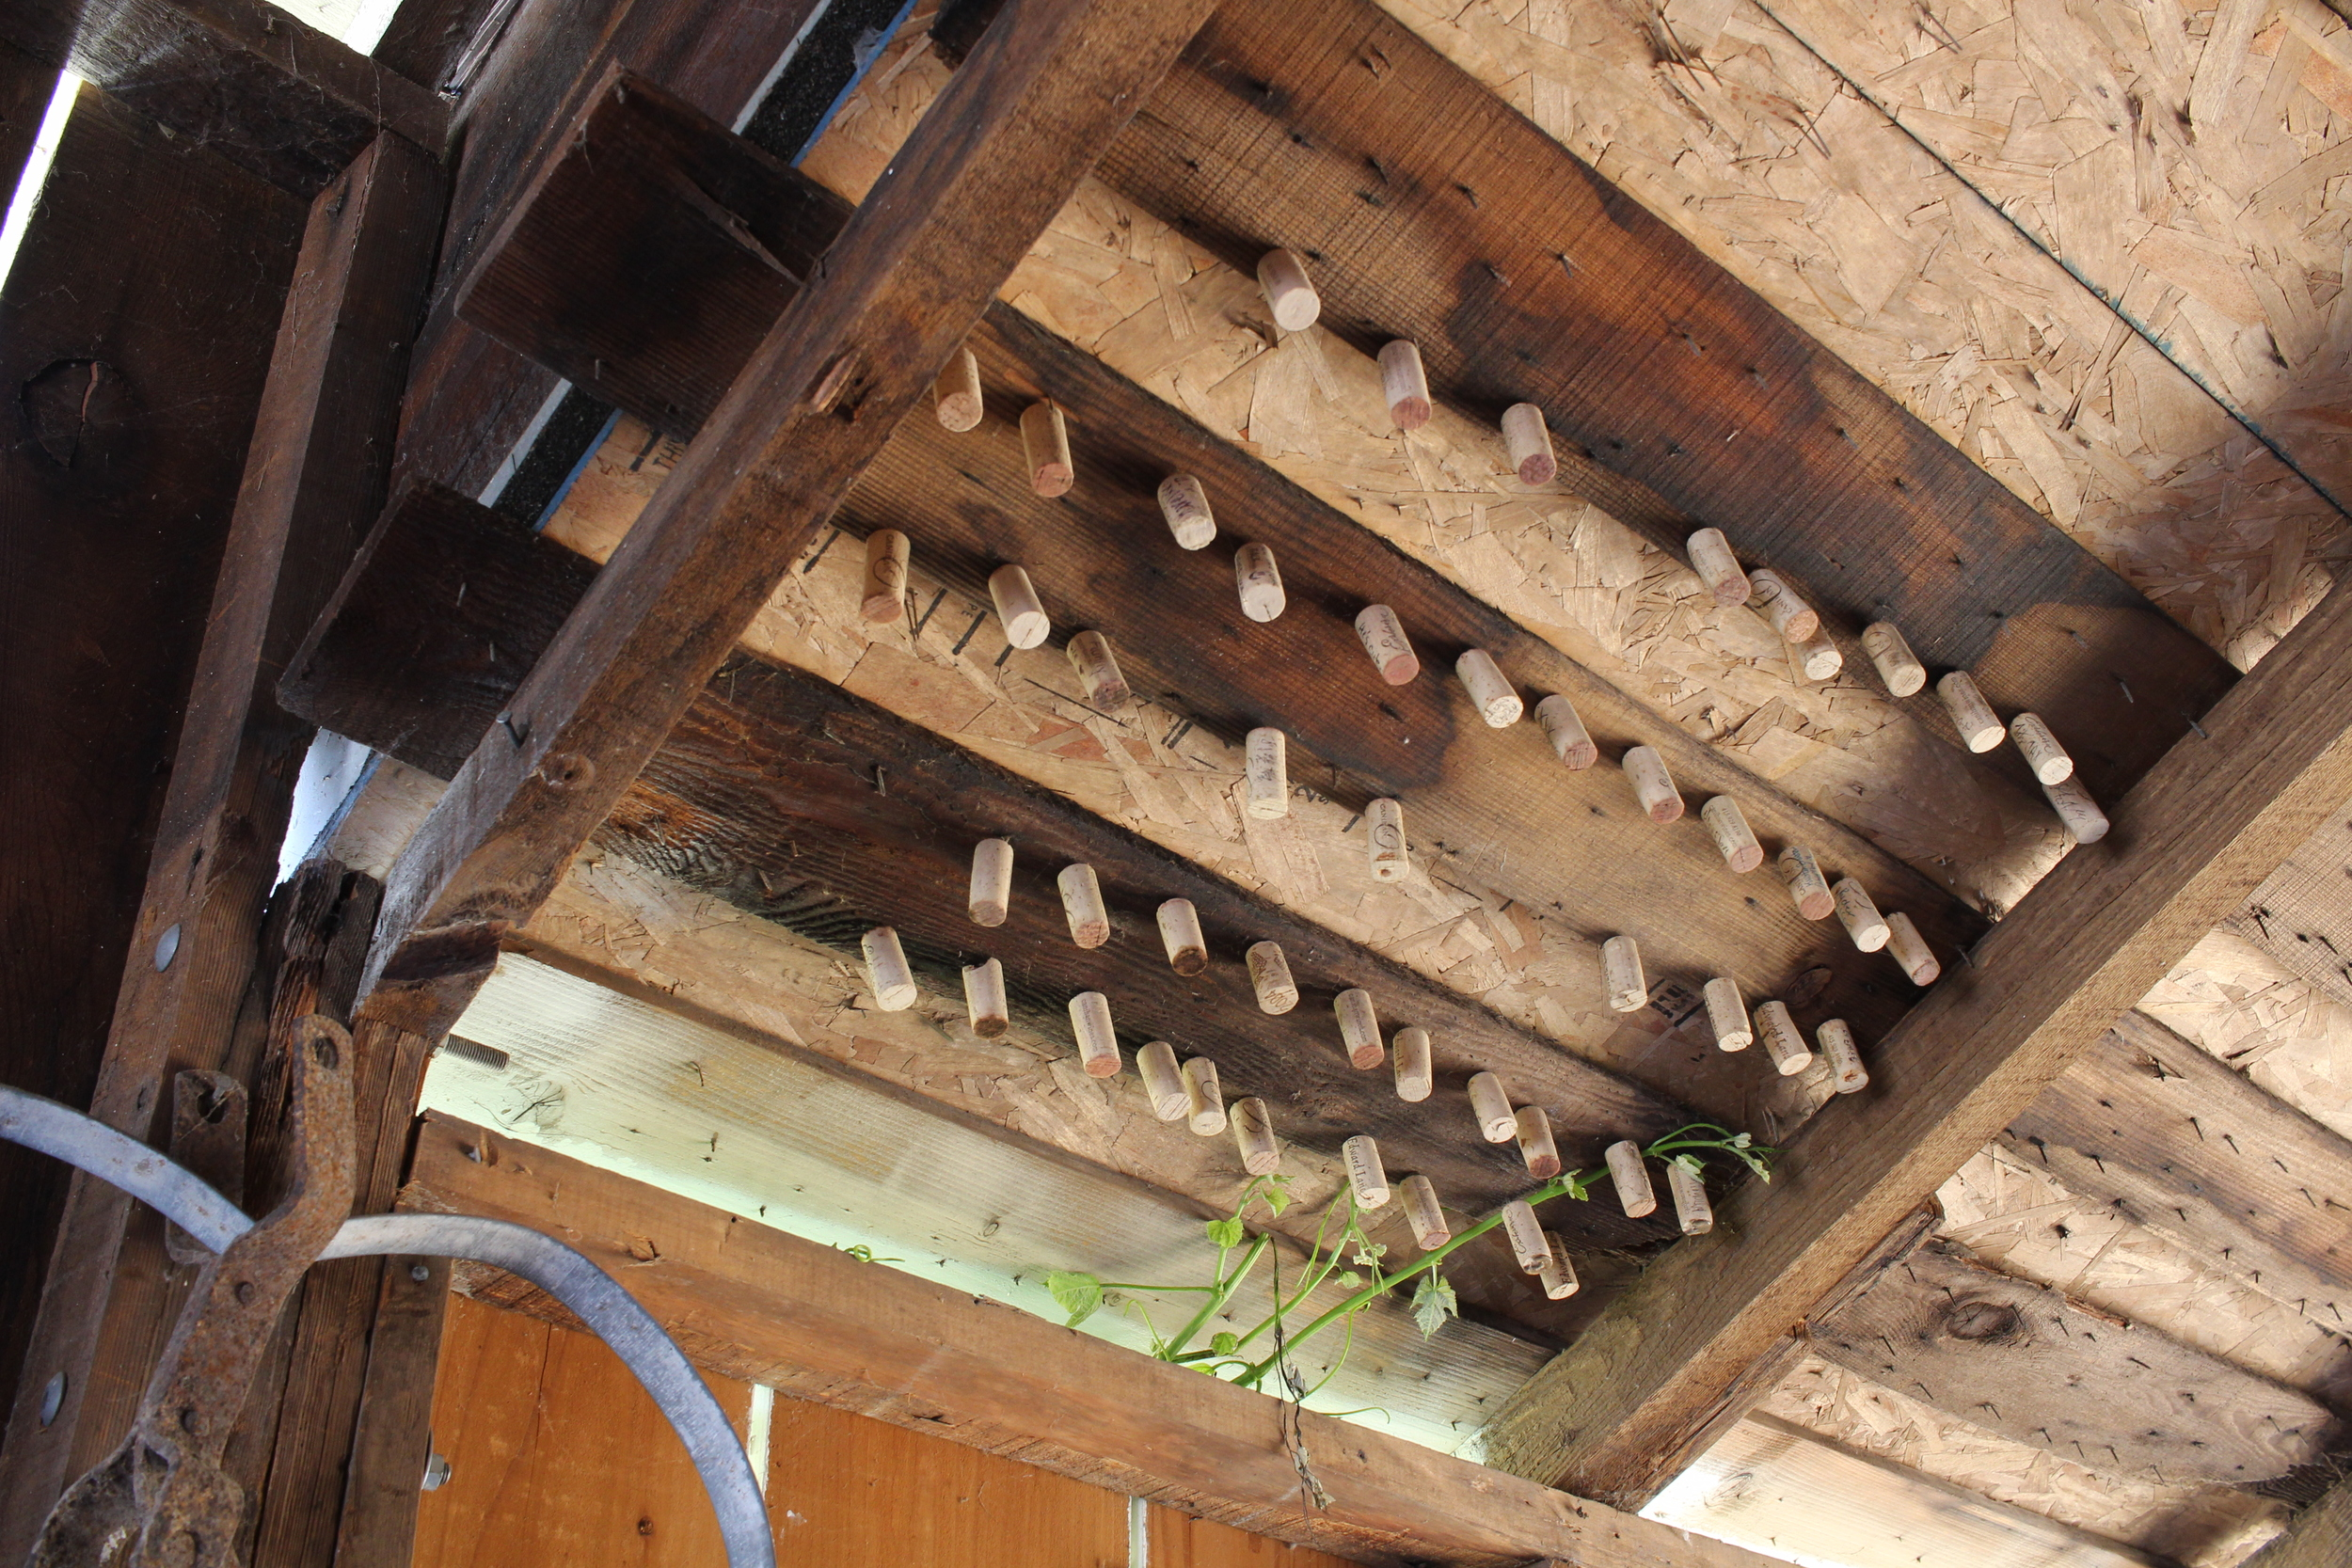 Corks hanging from the roof in the barn (Canihan Winery)